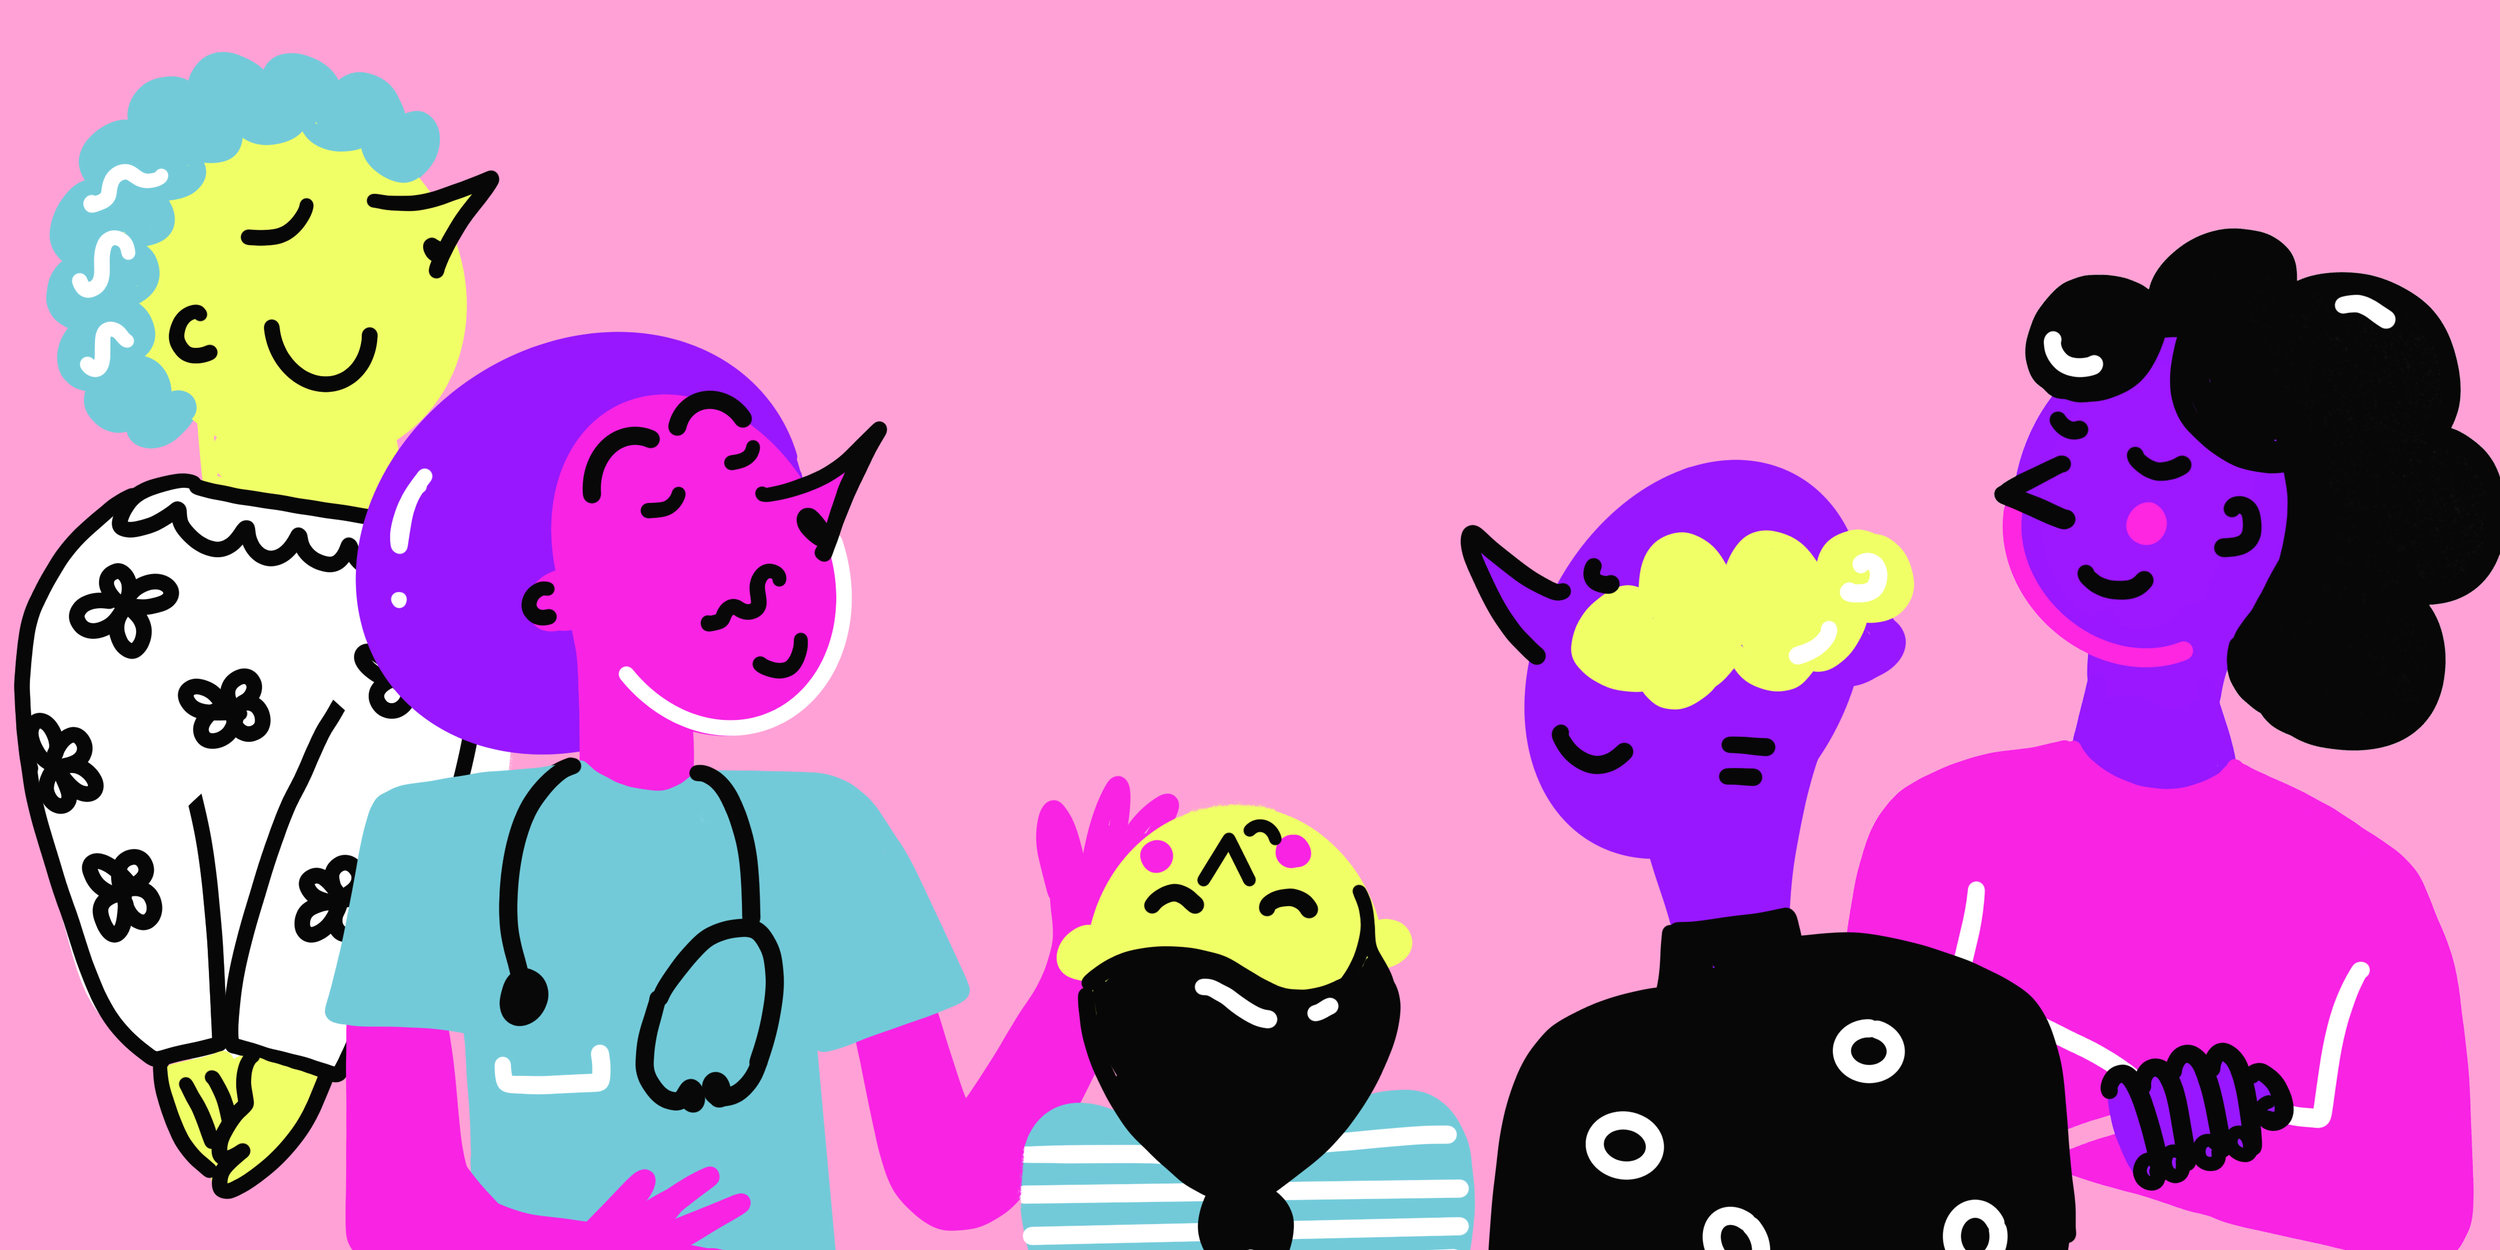 Five hand drawn characters smelling the air on a pink background